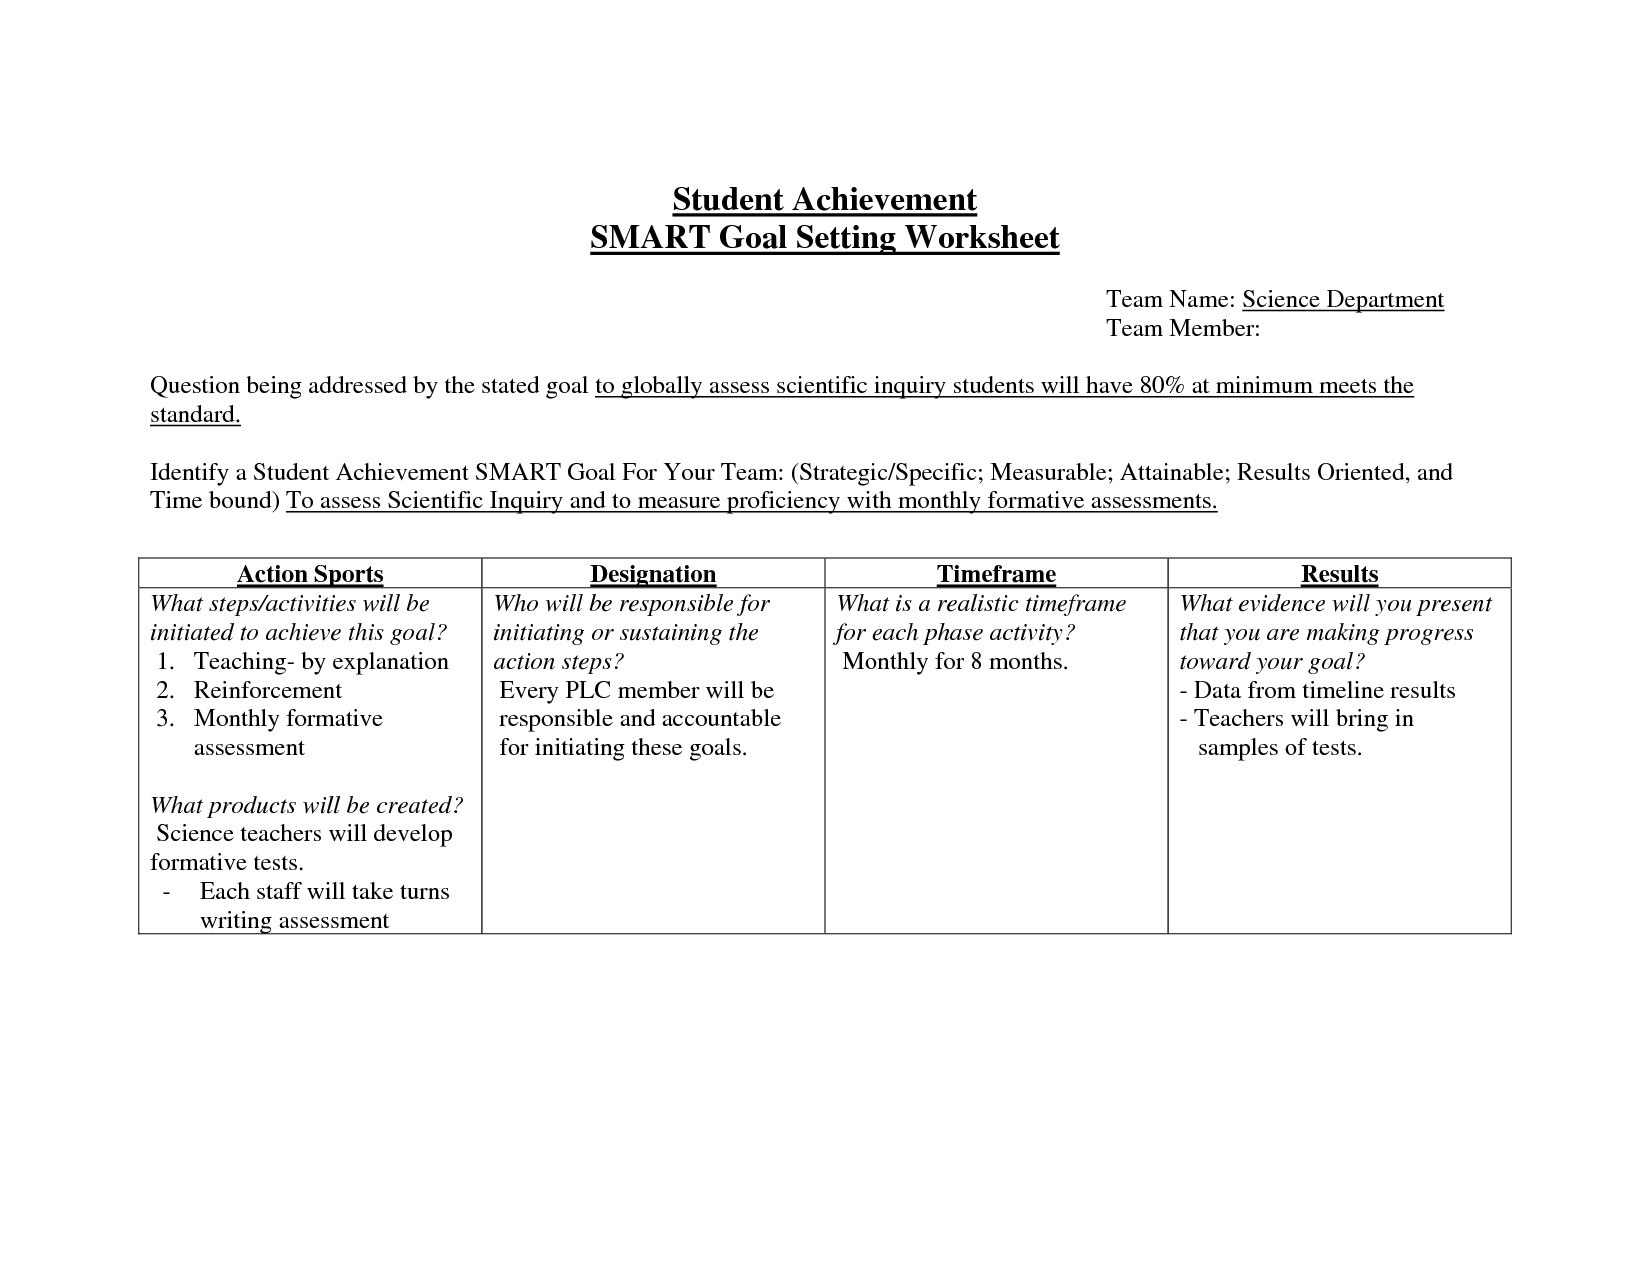 worksheet Wood Badge Ticket Worksheet 48 smart goals templates examples amp worksheets template lab goal sheet 10 free pdf